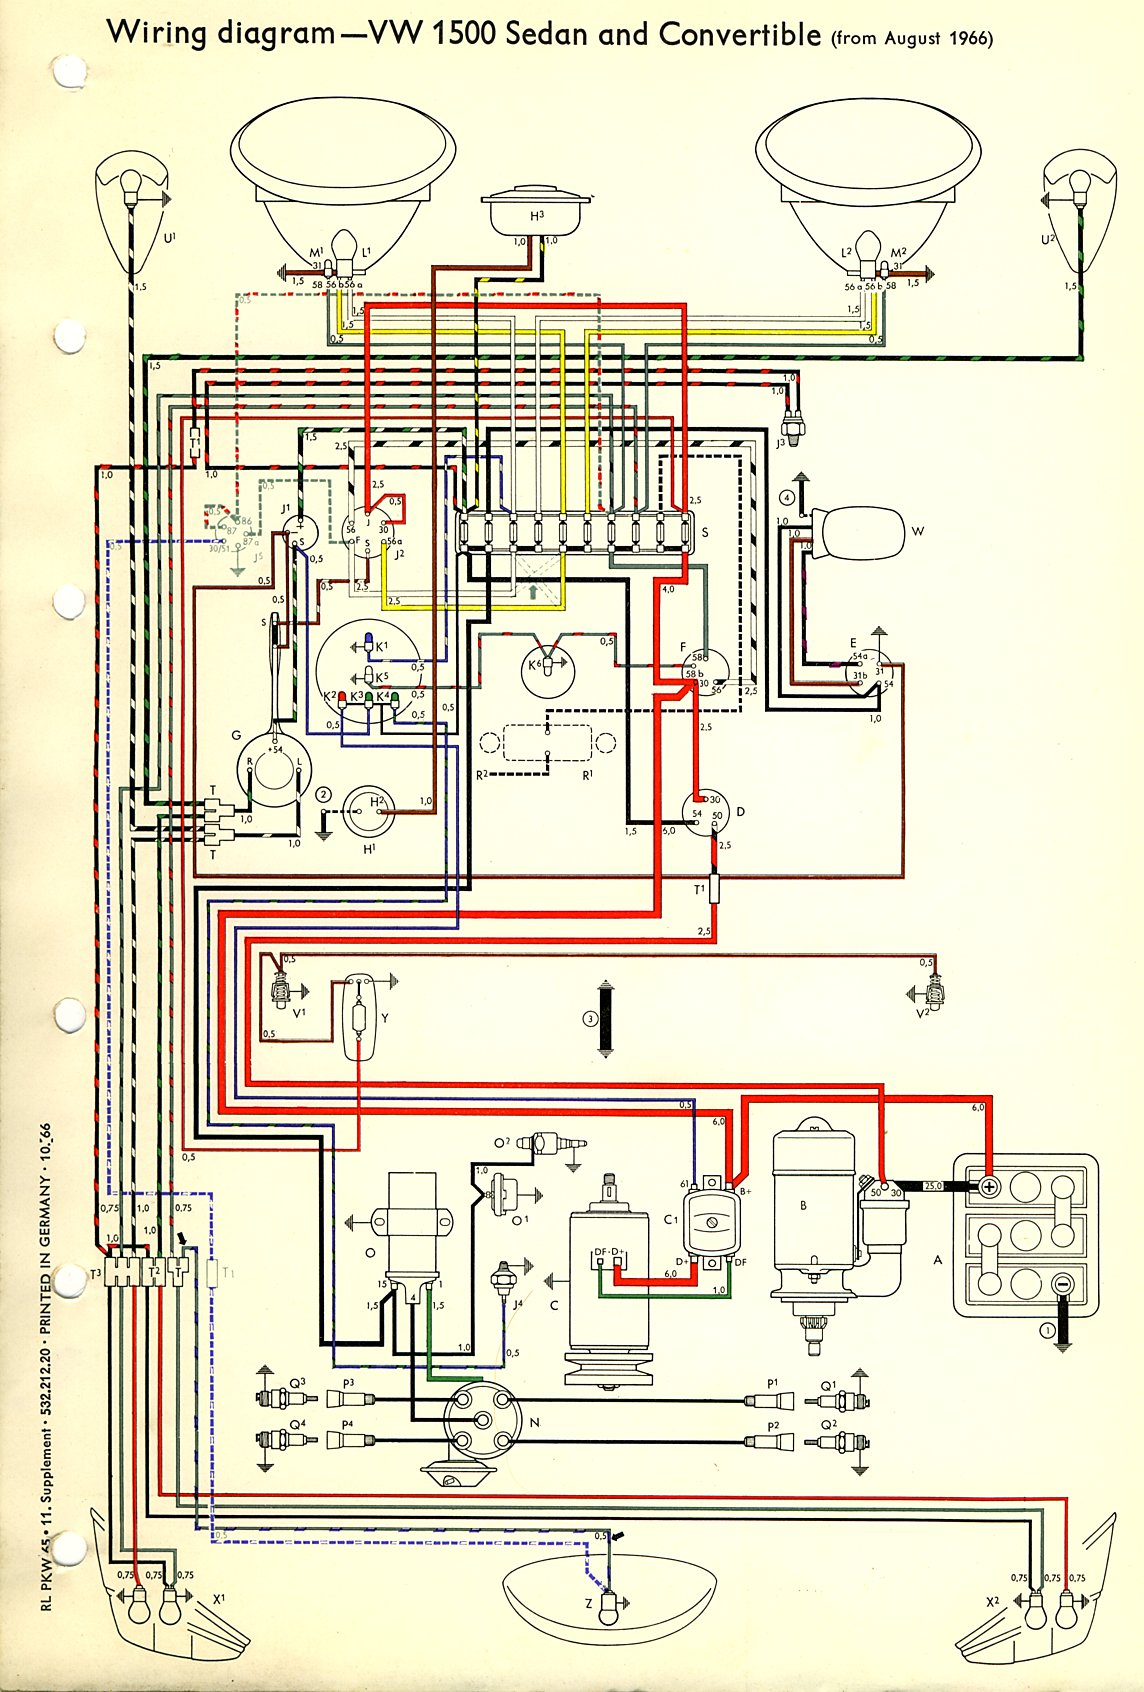 thesamba com type 1 wiring diagrams rh thesamba com vw beetle wiring diagram 1972 vw beetle wiring diagram 1972